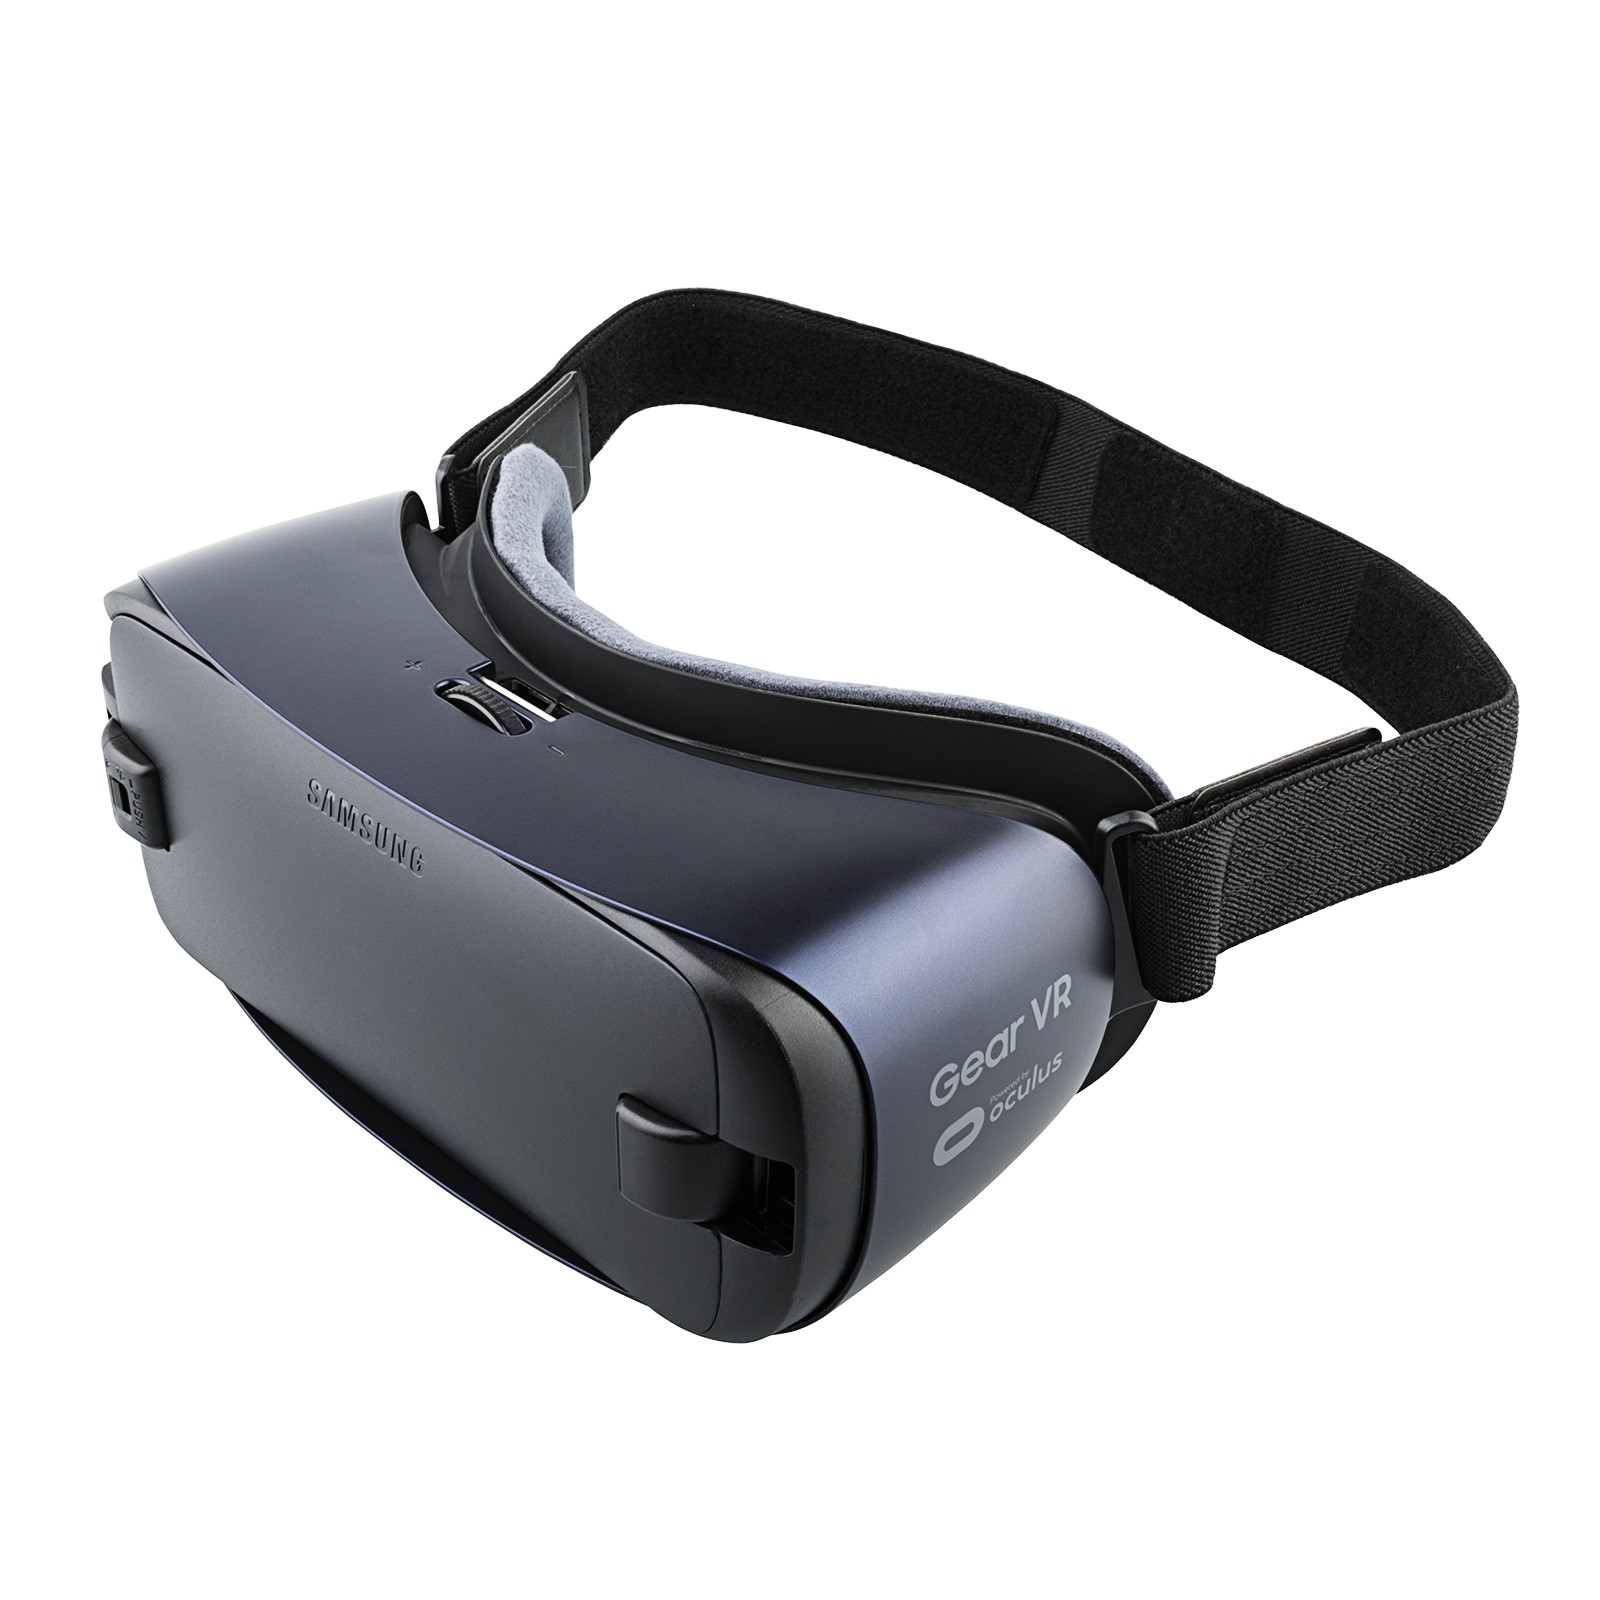 Samsung Gear VR Virtual Reality Headset SAM-GEARVR2-B1